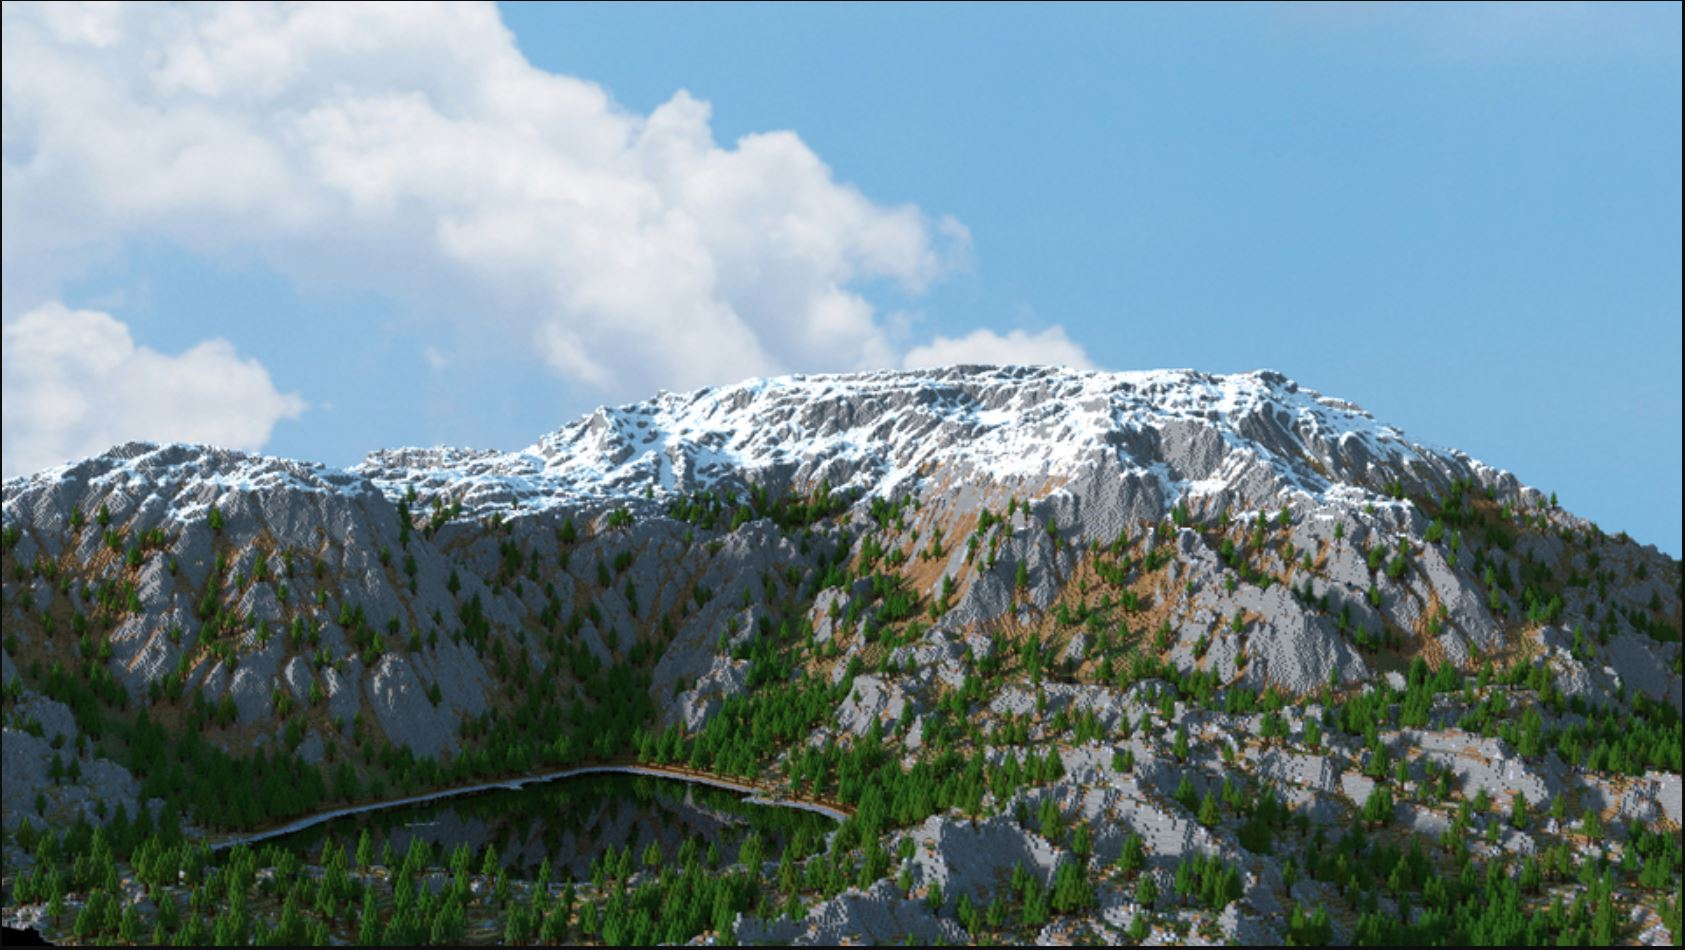 Is That A Photo Of A Mountain? No That Is A Mountain That Has Been Created In Minecraft